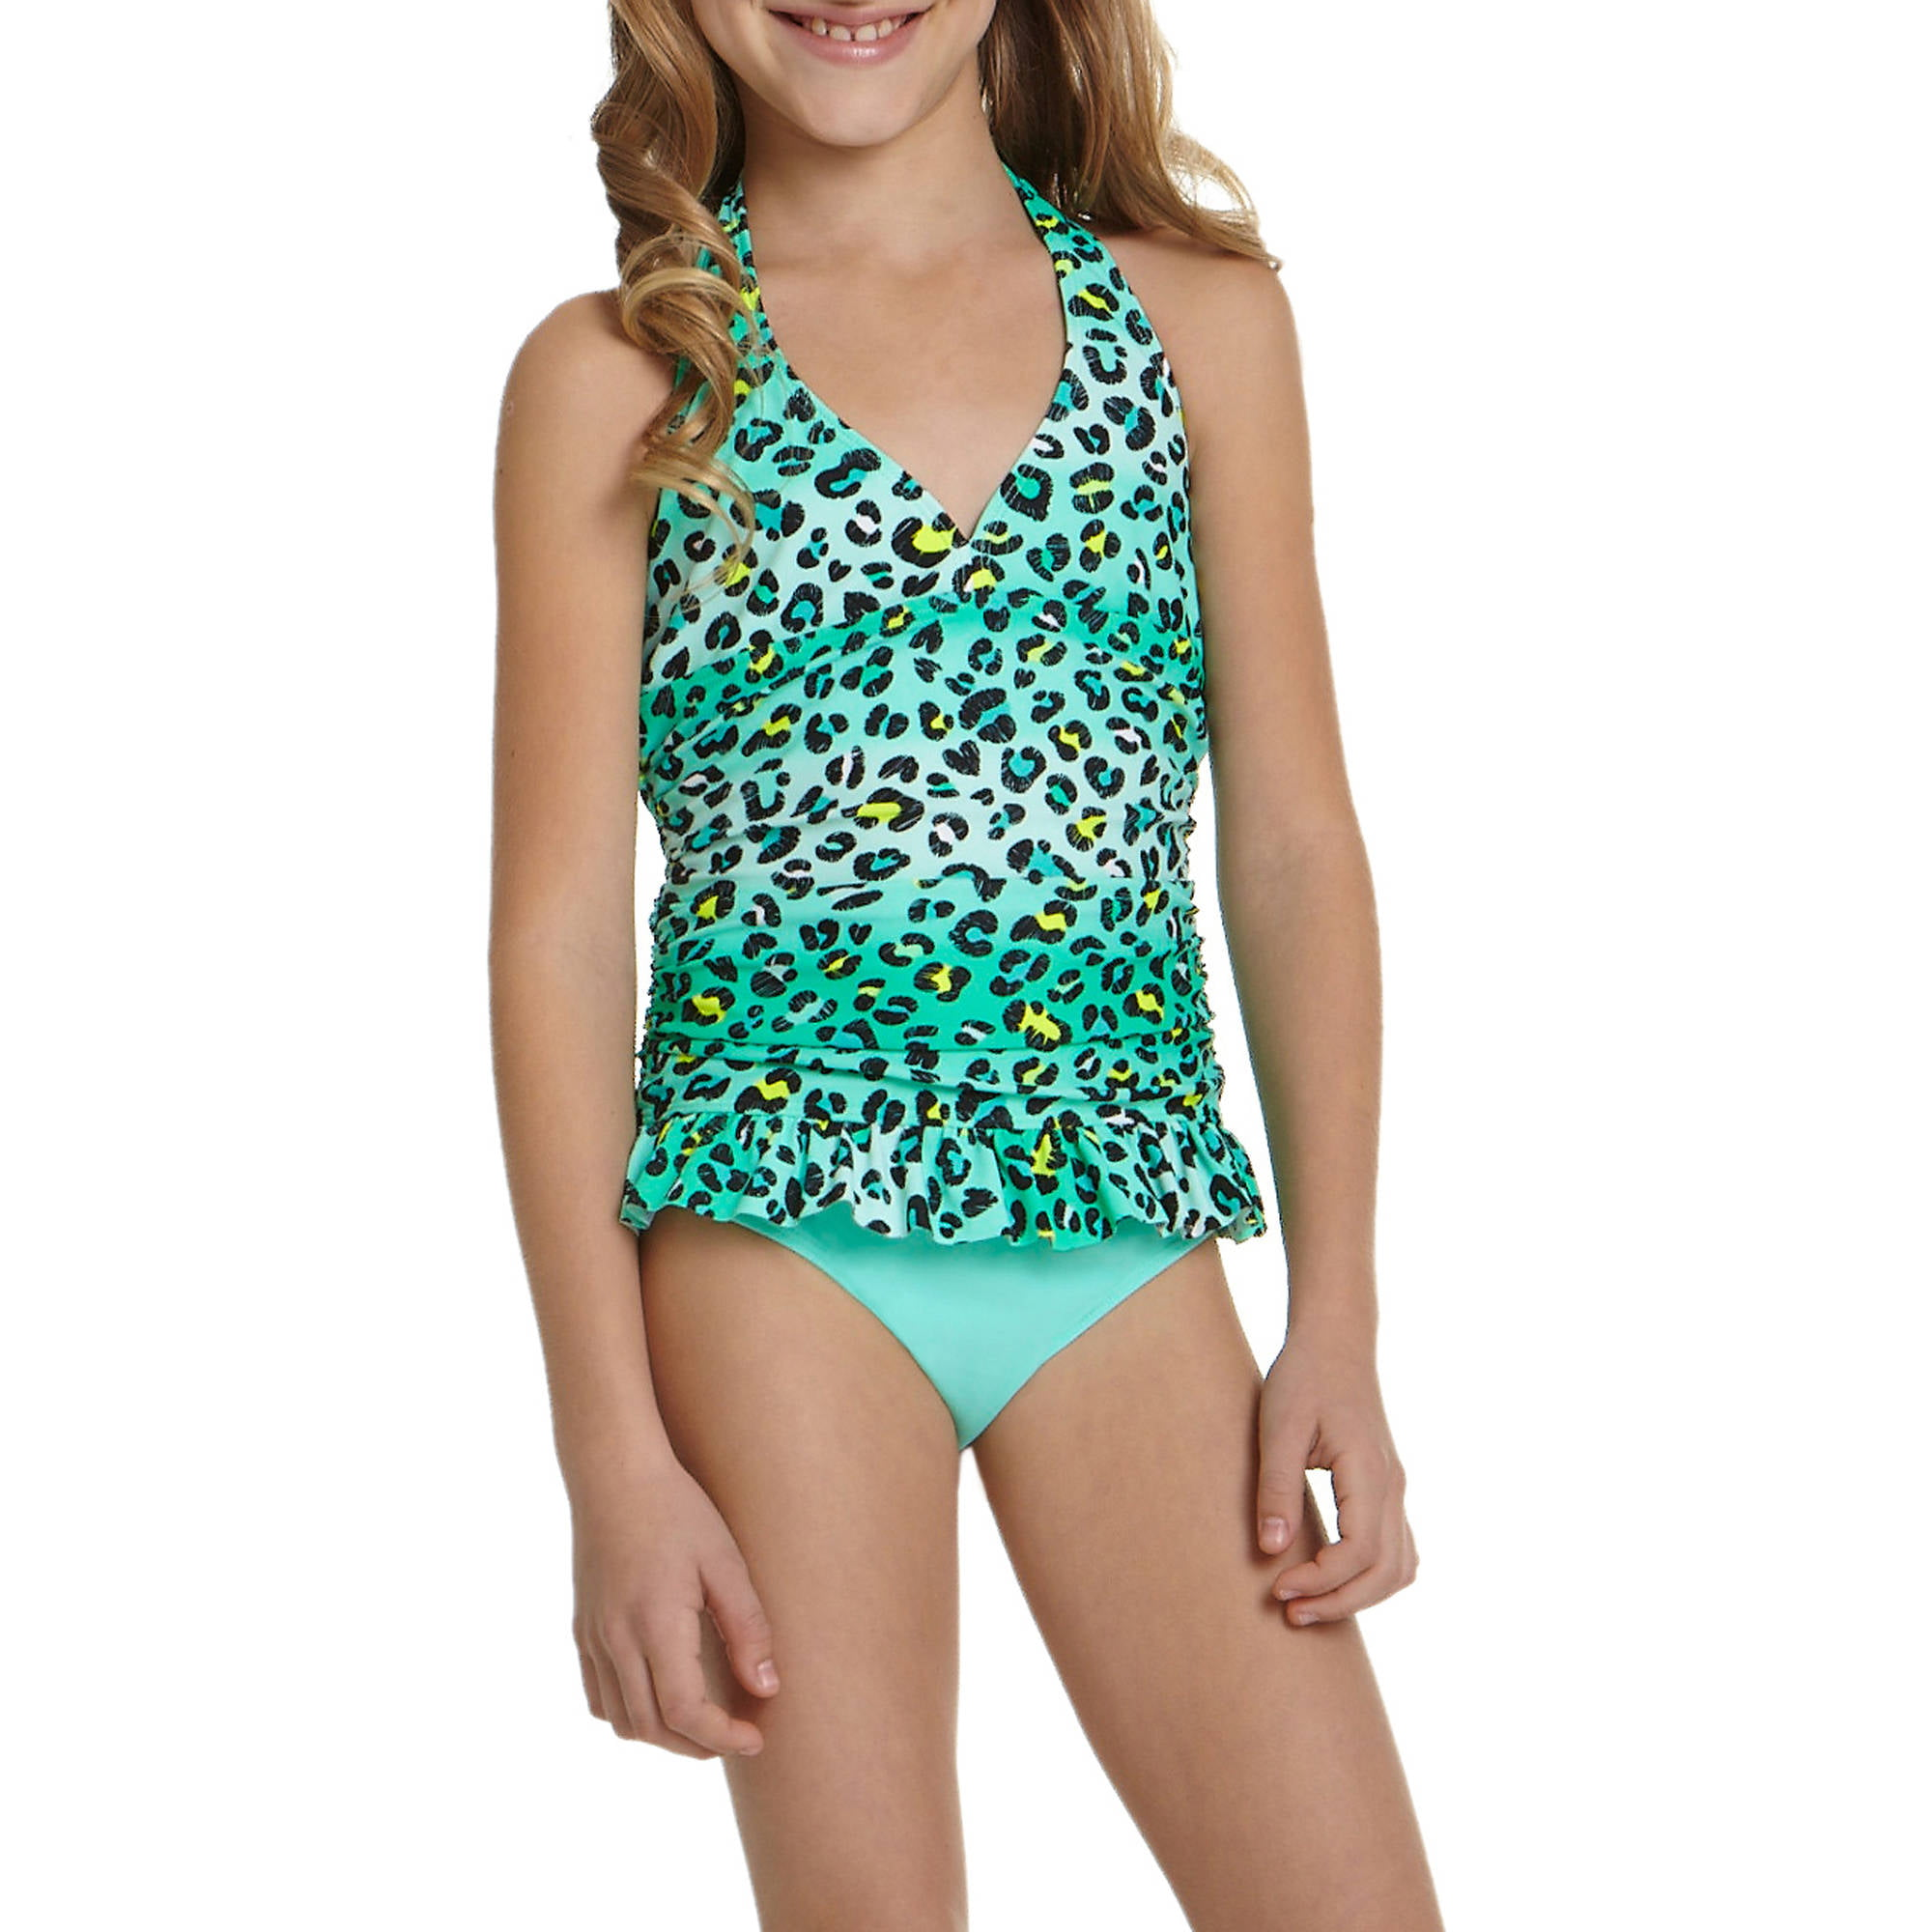 1a57927496480 OP - Girls' Ella One Piece Swimsuit - Walmart.com